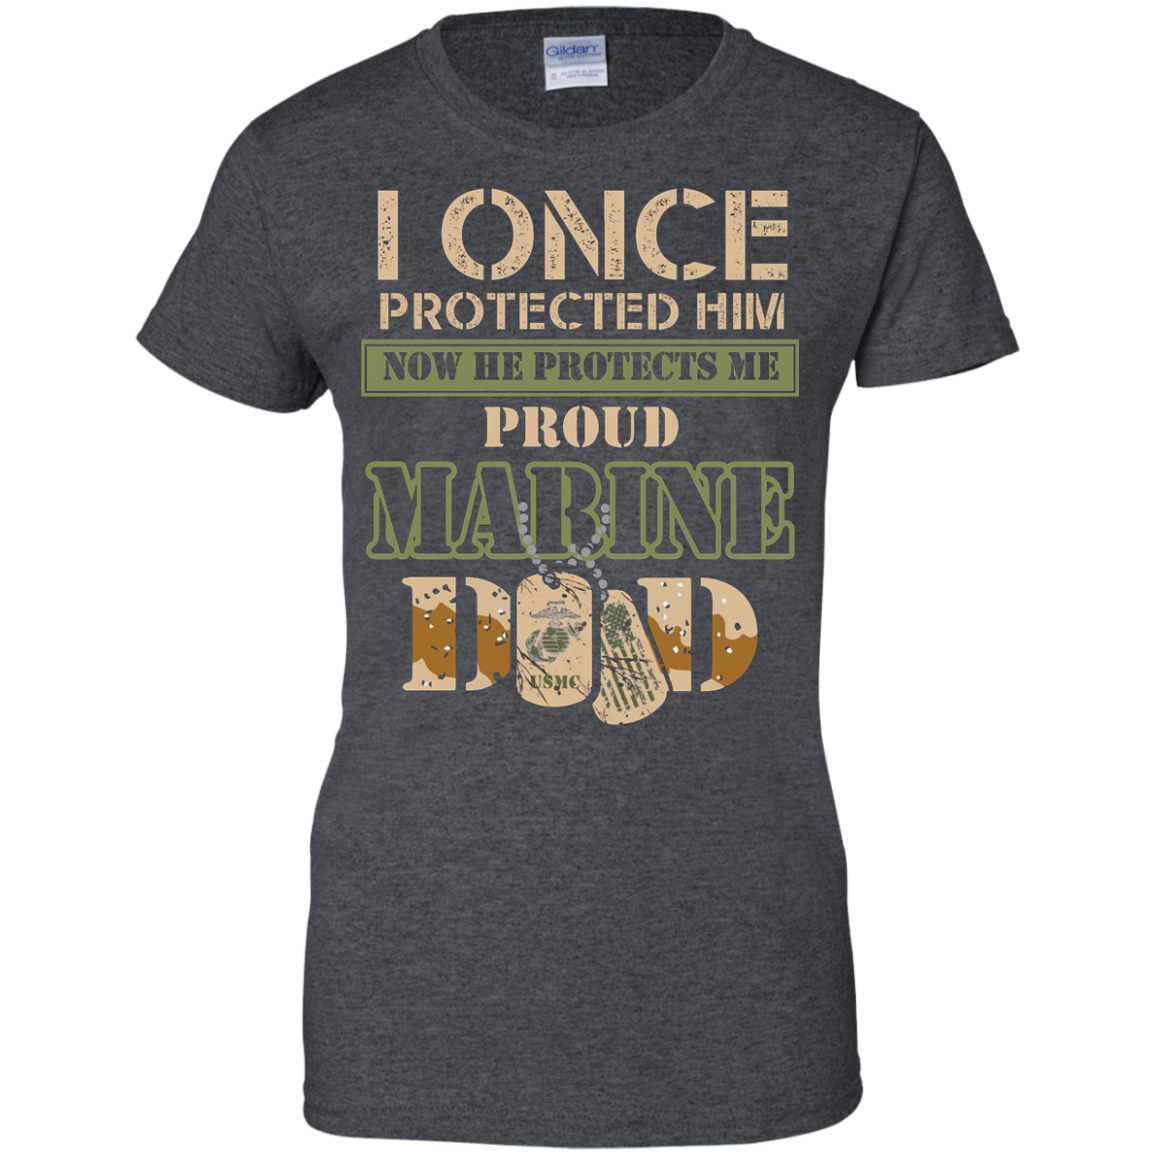 Men's Proud Marine Dad of his Military Son T-Shirt